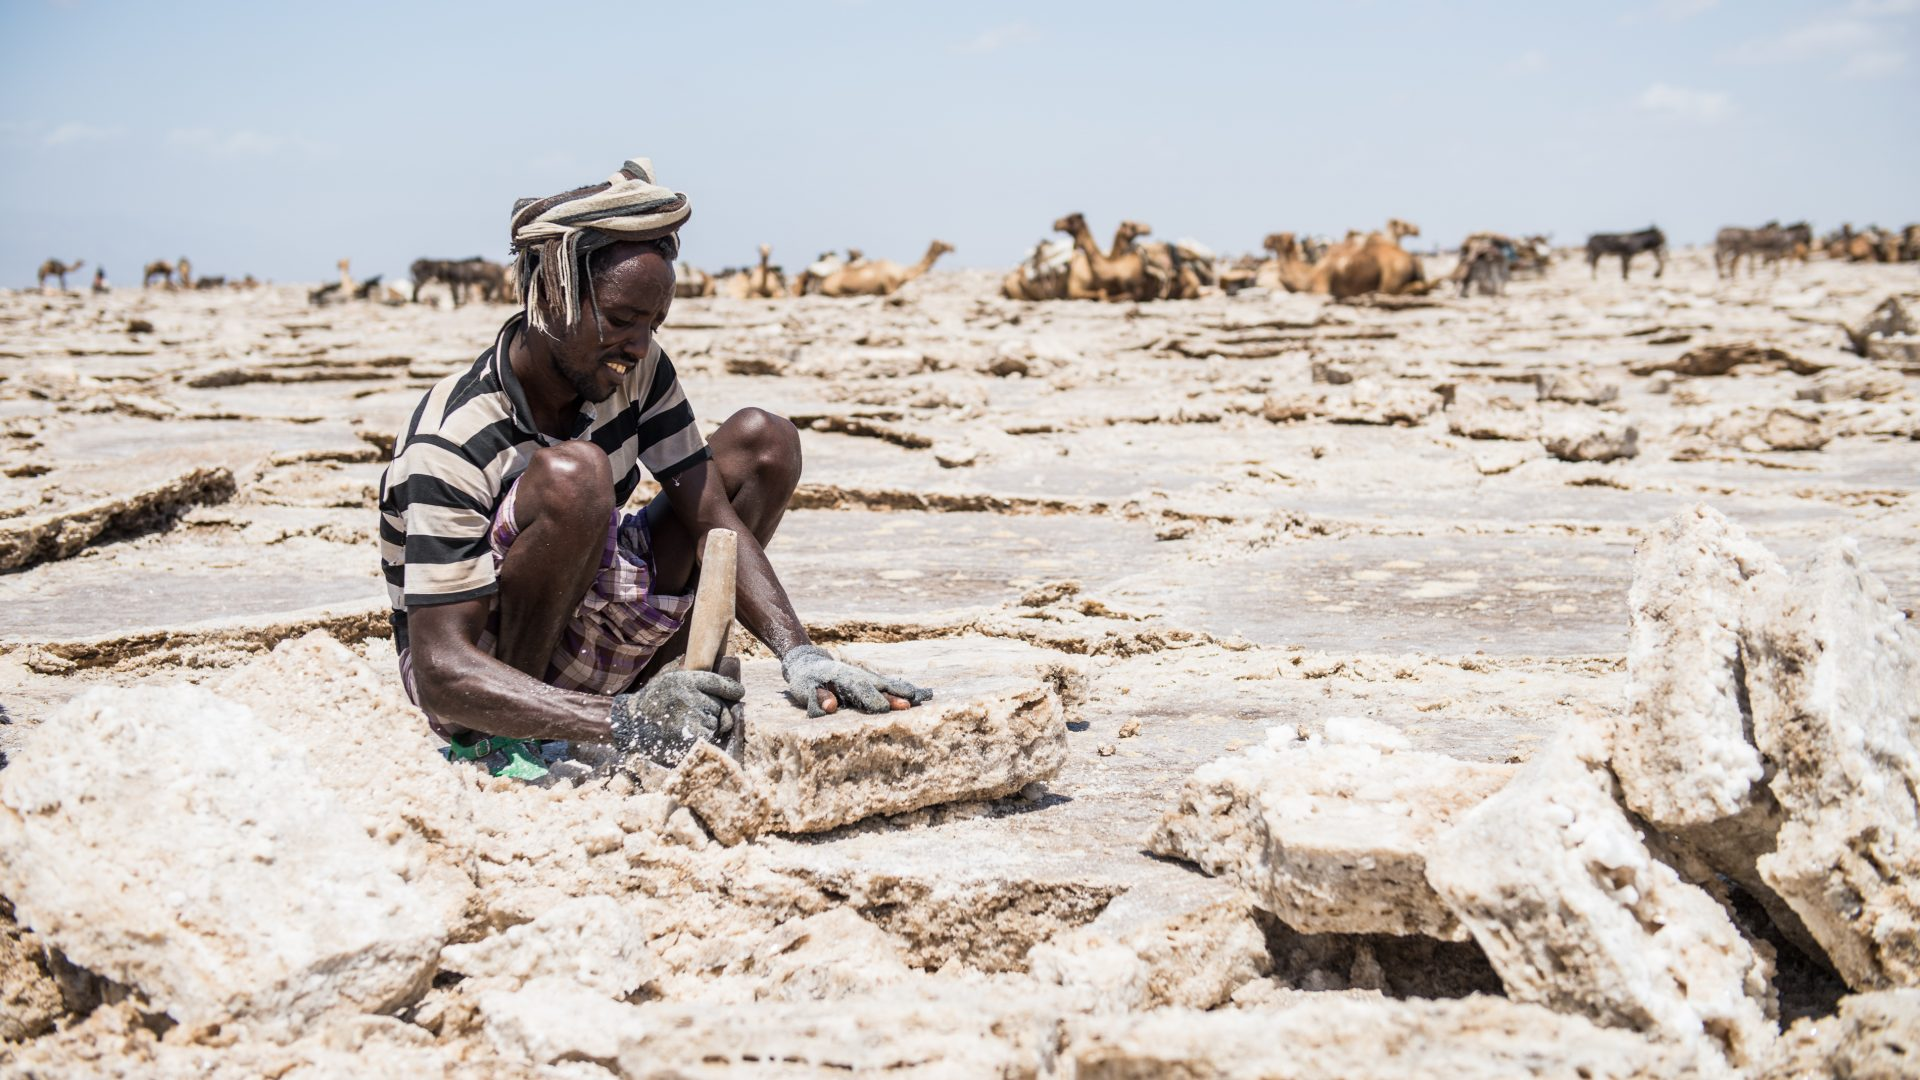 A man cuts slabs of salt from the salt plains in the North East of Ethiopia.